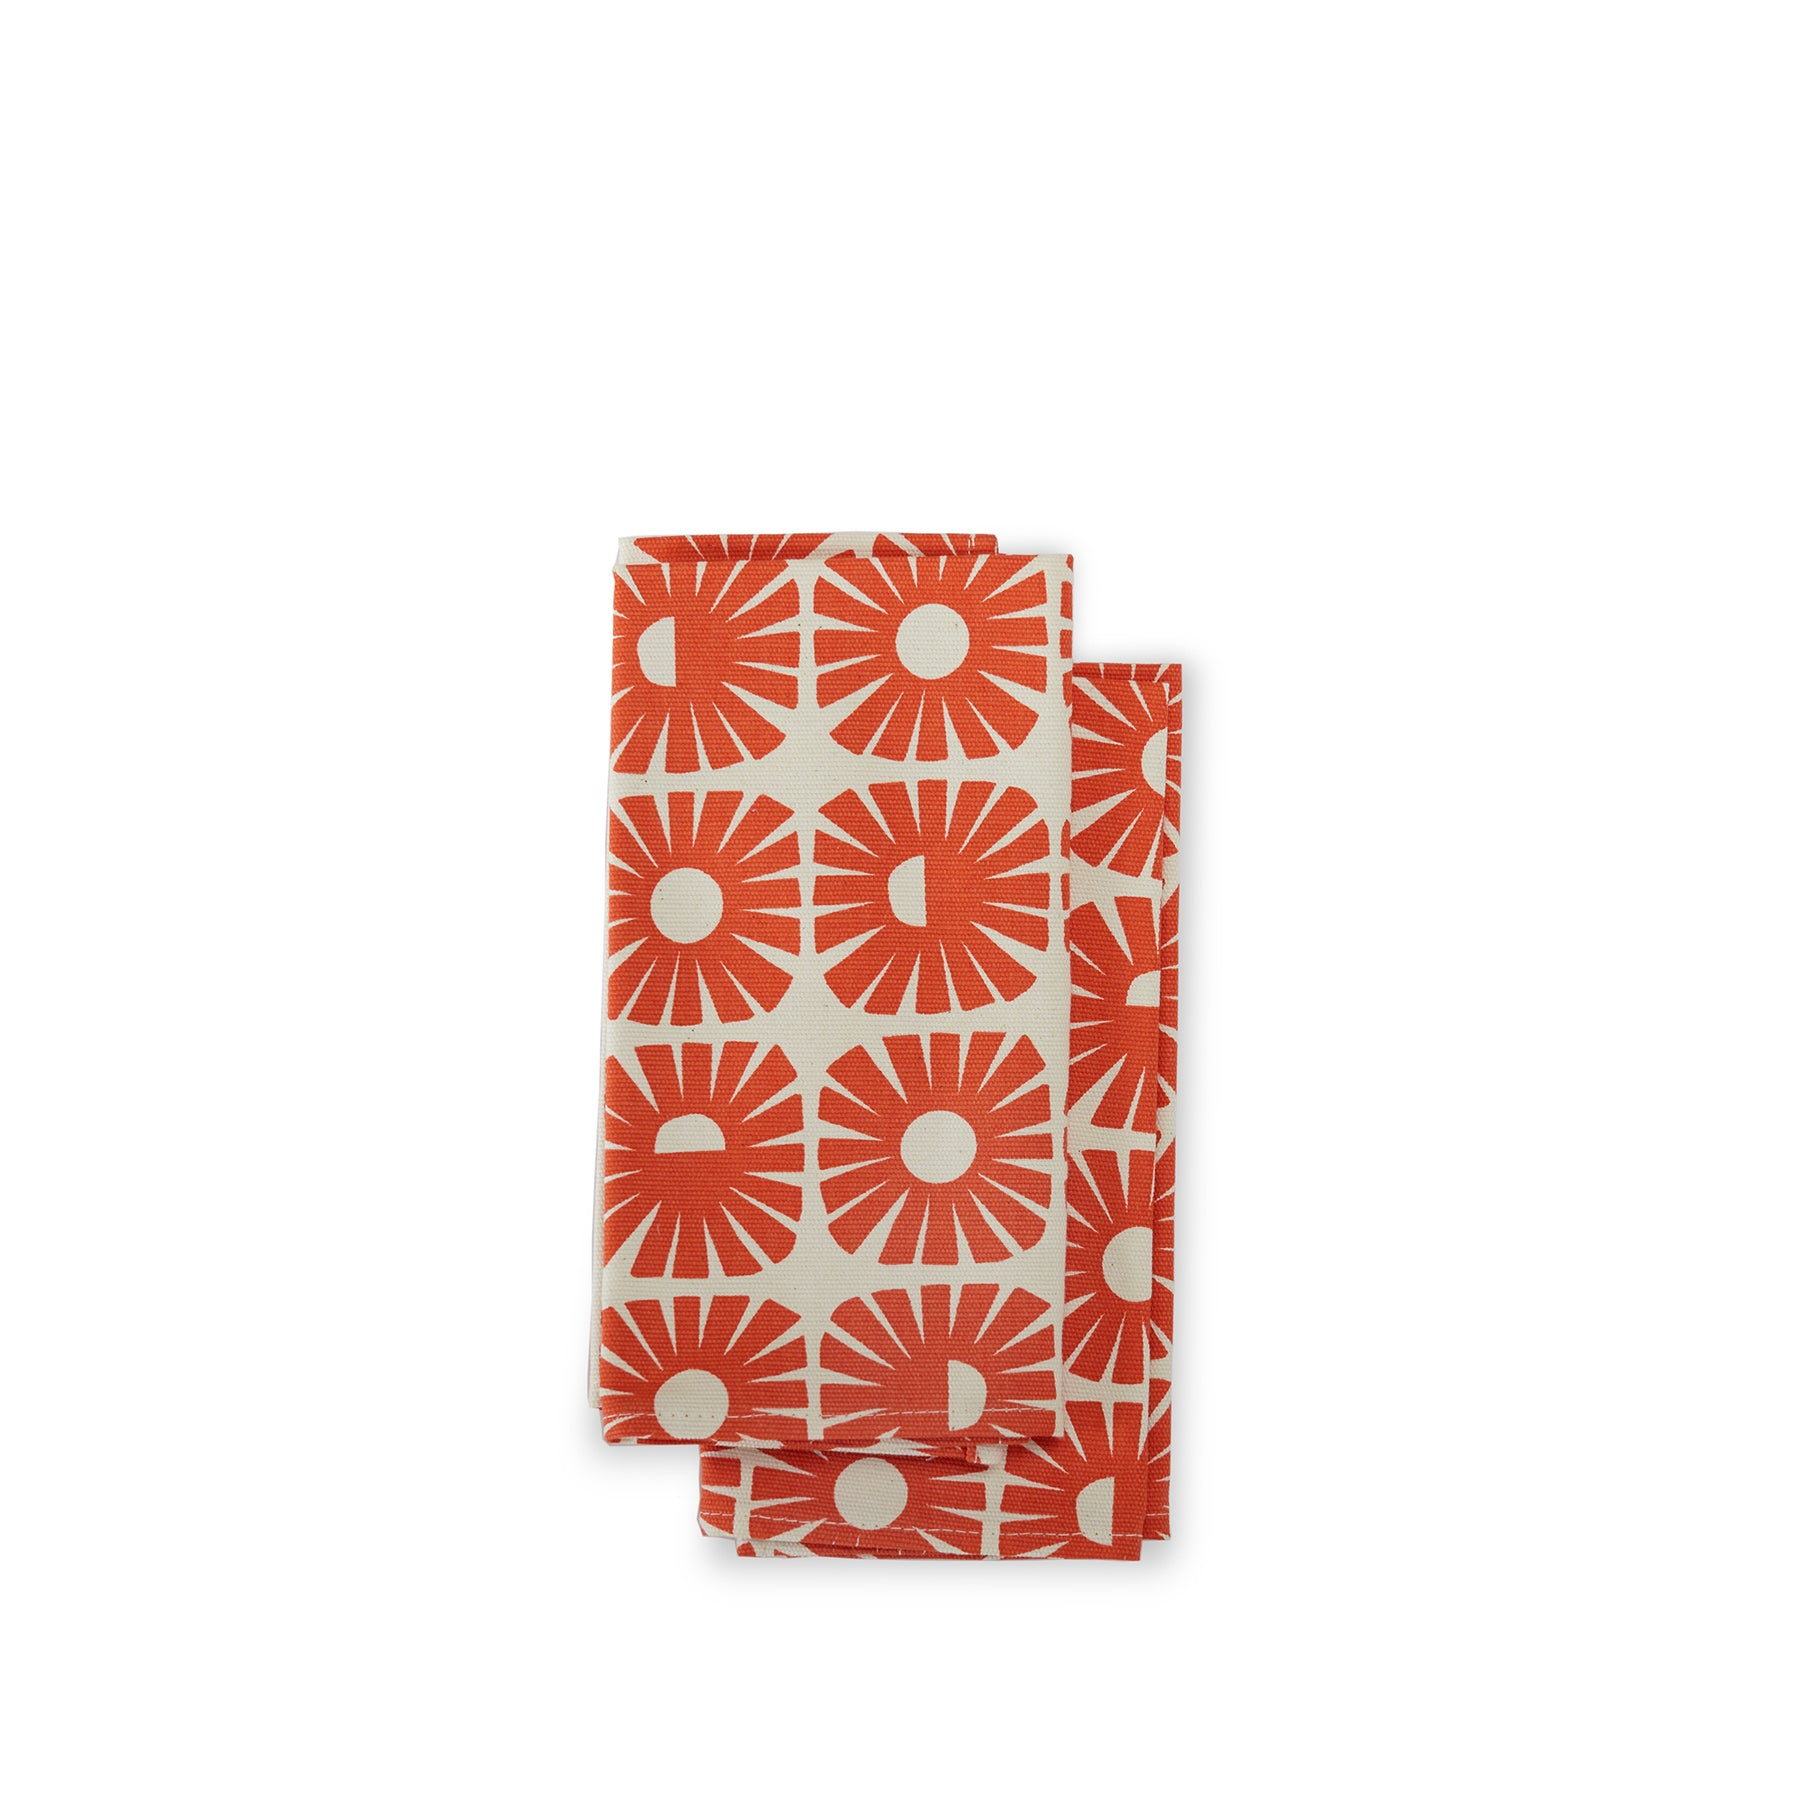 Sunnyside Napkins in Persimmon (Set of 2) Zoom Image 1